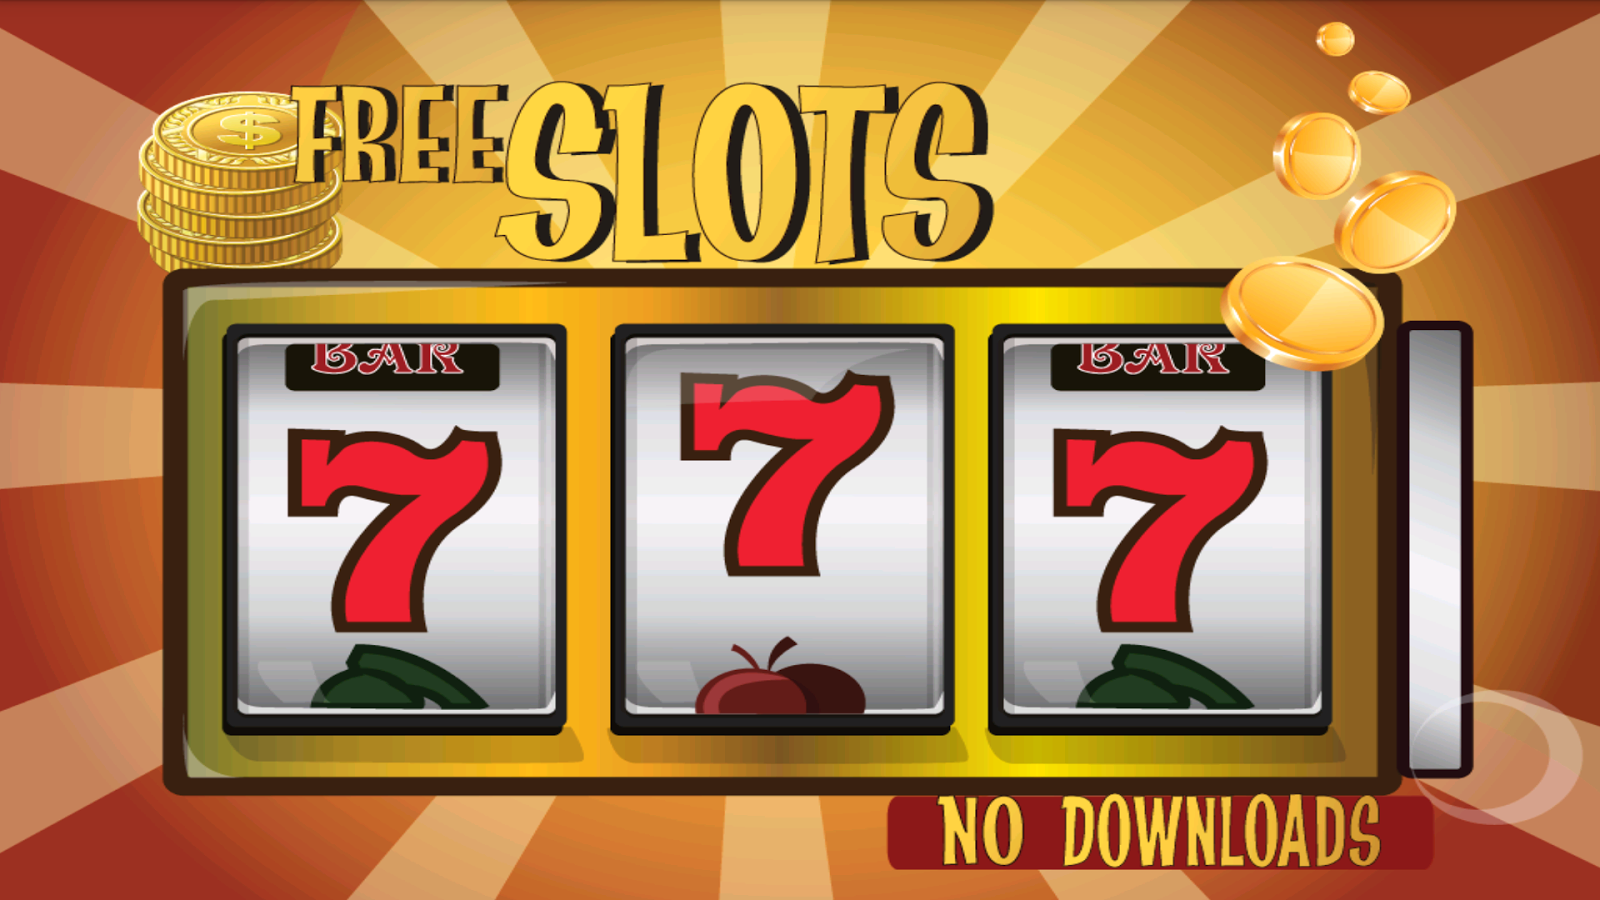 Spinning Dragons Slot Machine - Free to Play Demo Version